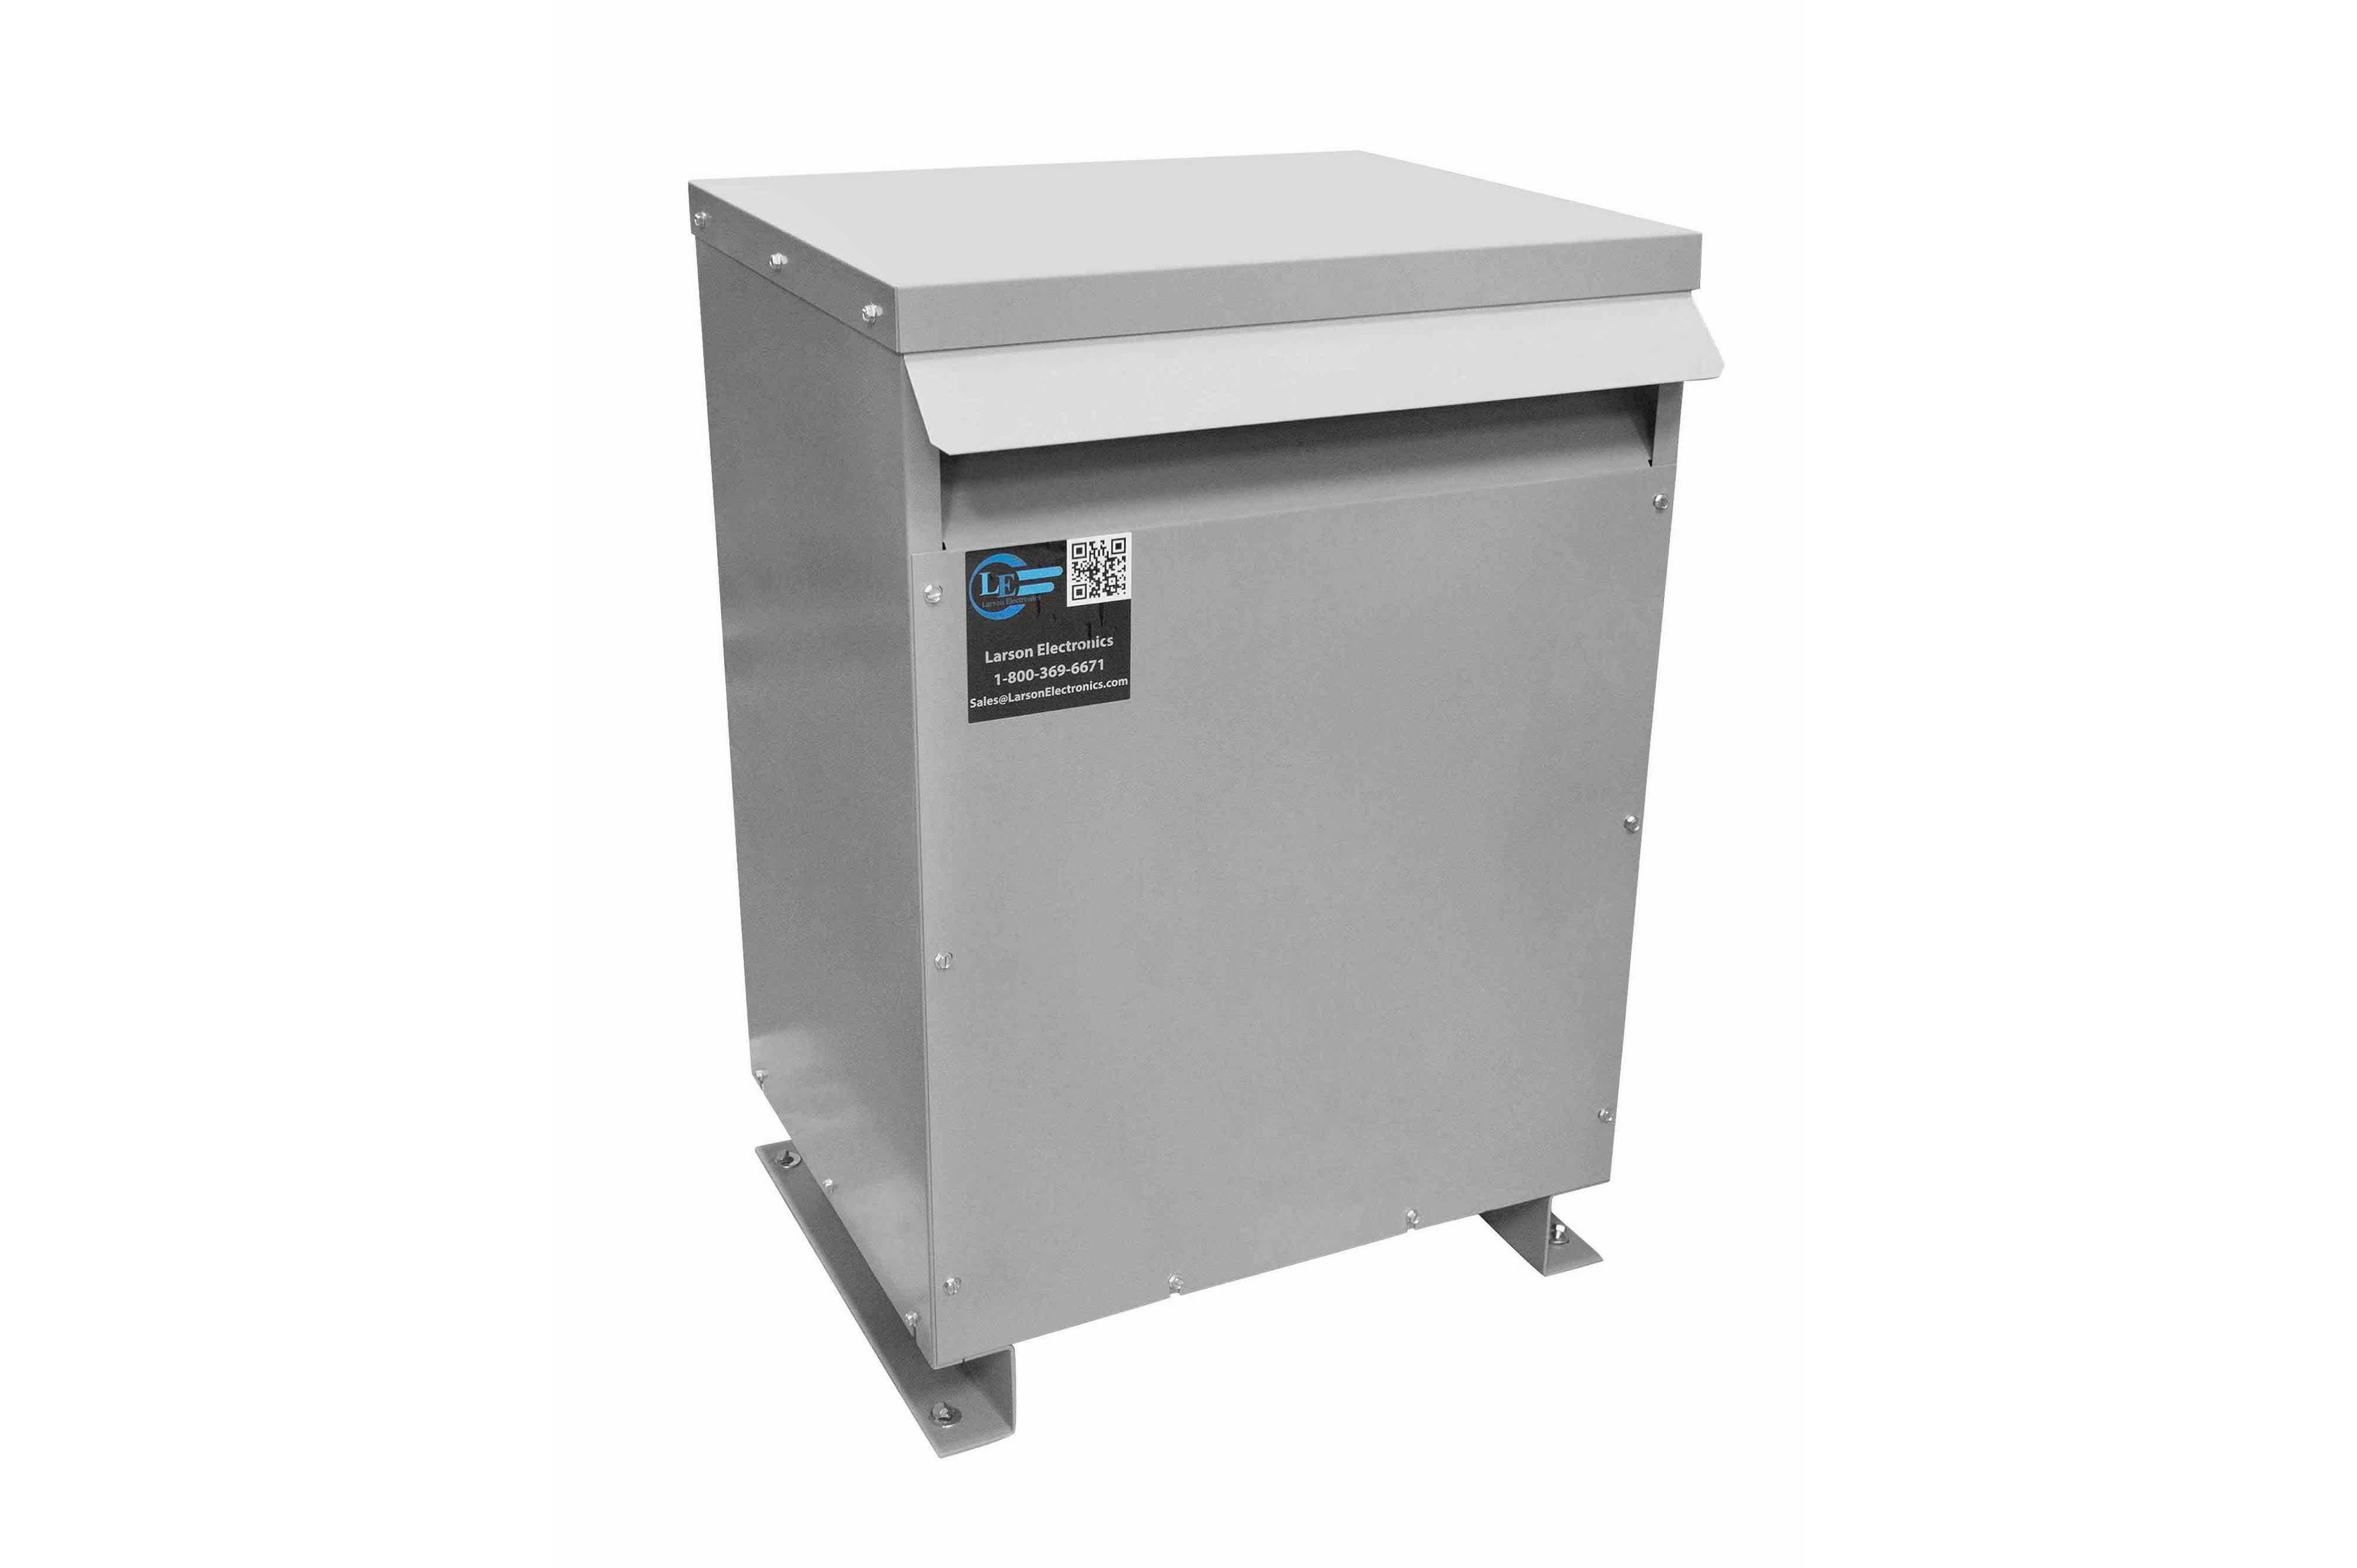 20 kVA 3PH Isolation Transformer, 240V Wye Primary, 400Y/231 Wye-N Secondary, N3R, Ventilated, 60 Hz